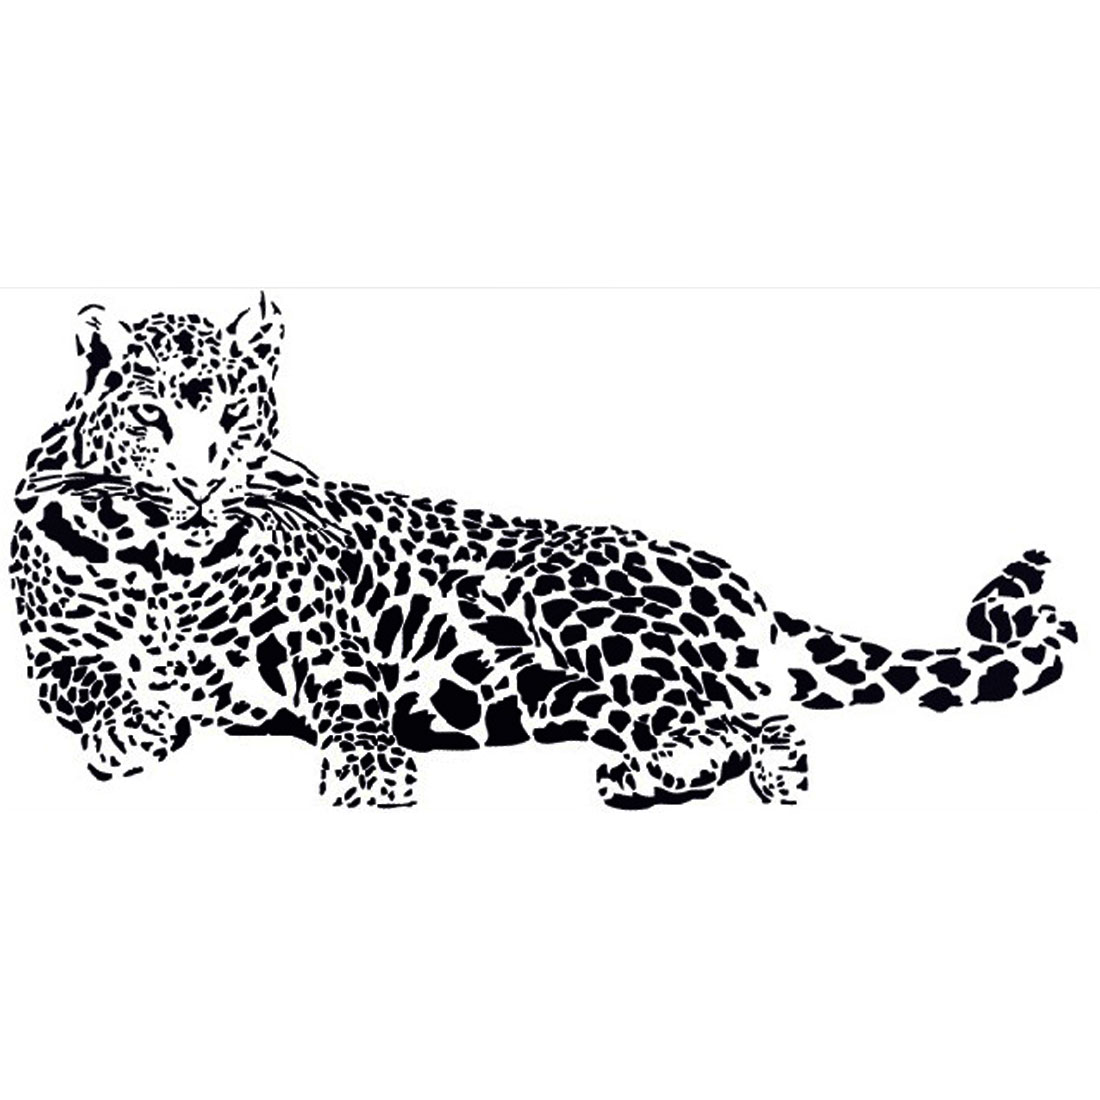 Household Living Room Leopard Pattern Removable Wall Sticker Wallpaper Mural